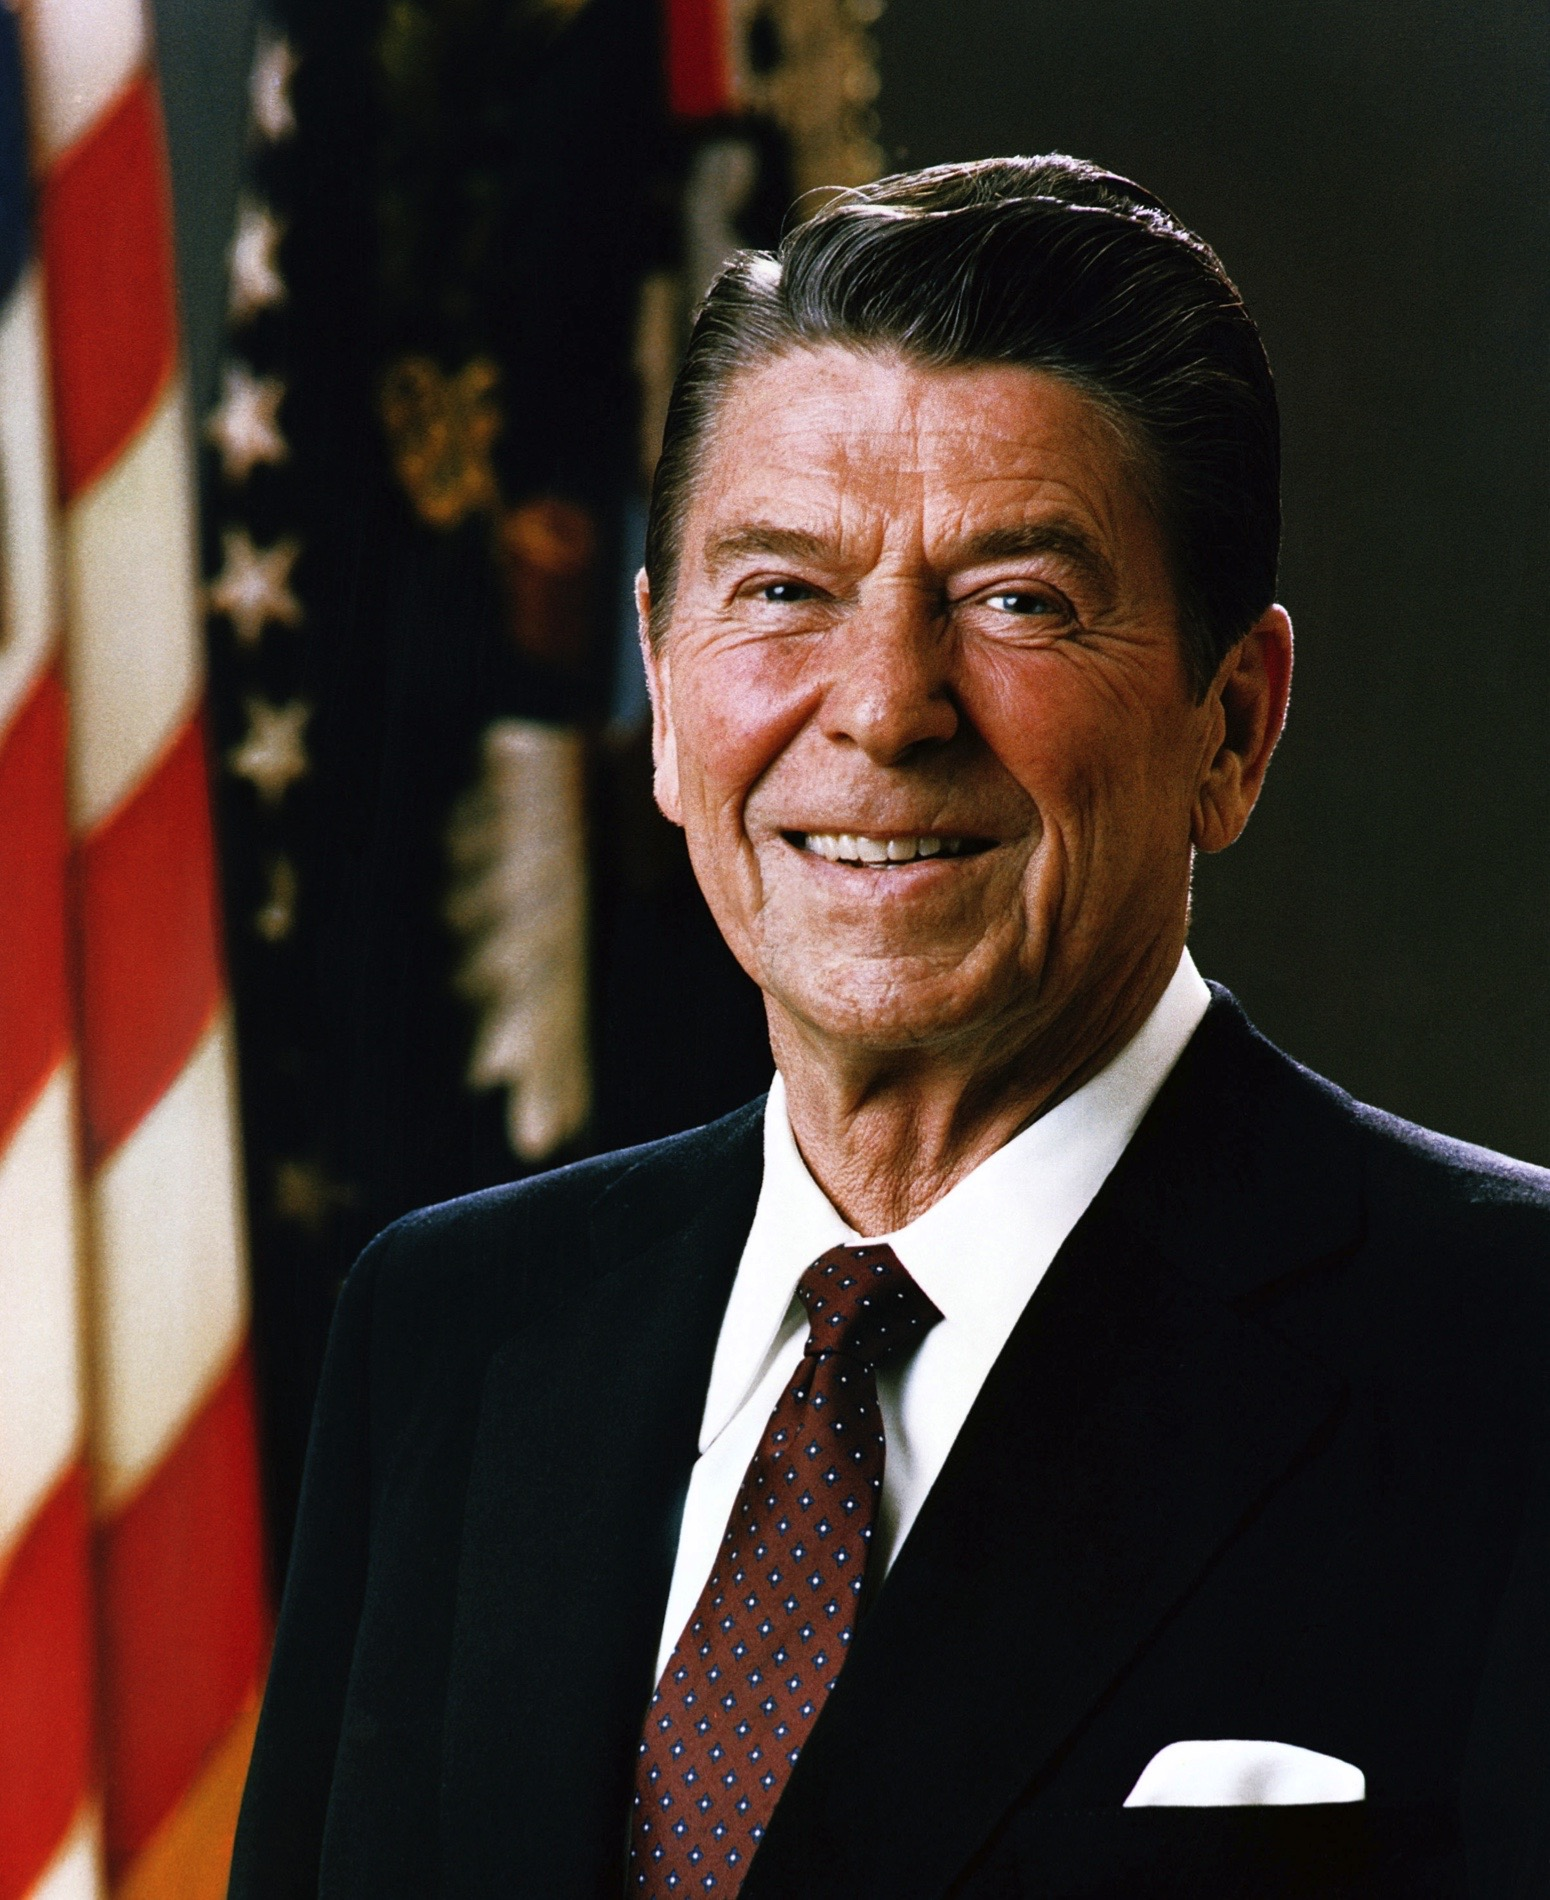 Portrait of President Ronald Reagan, 1981. (Photo by Universal History Archive/Getty Images)